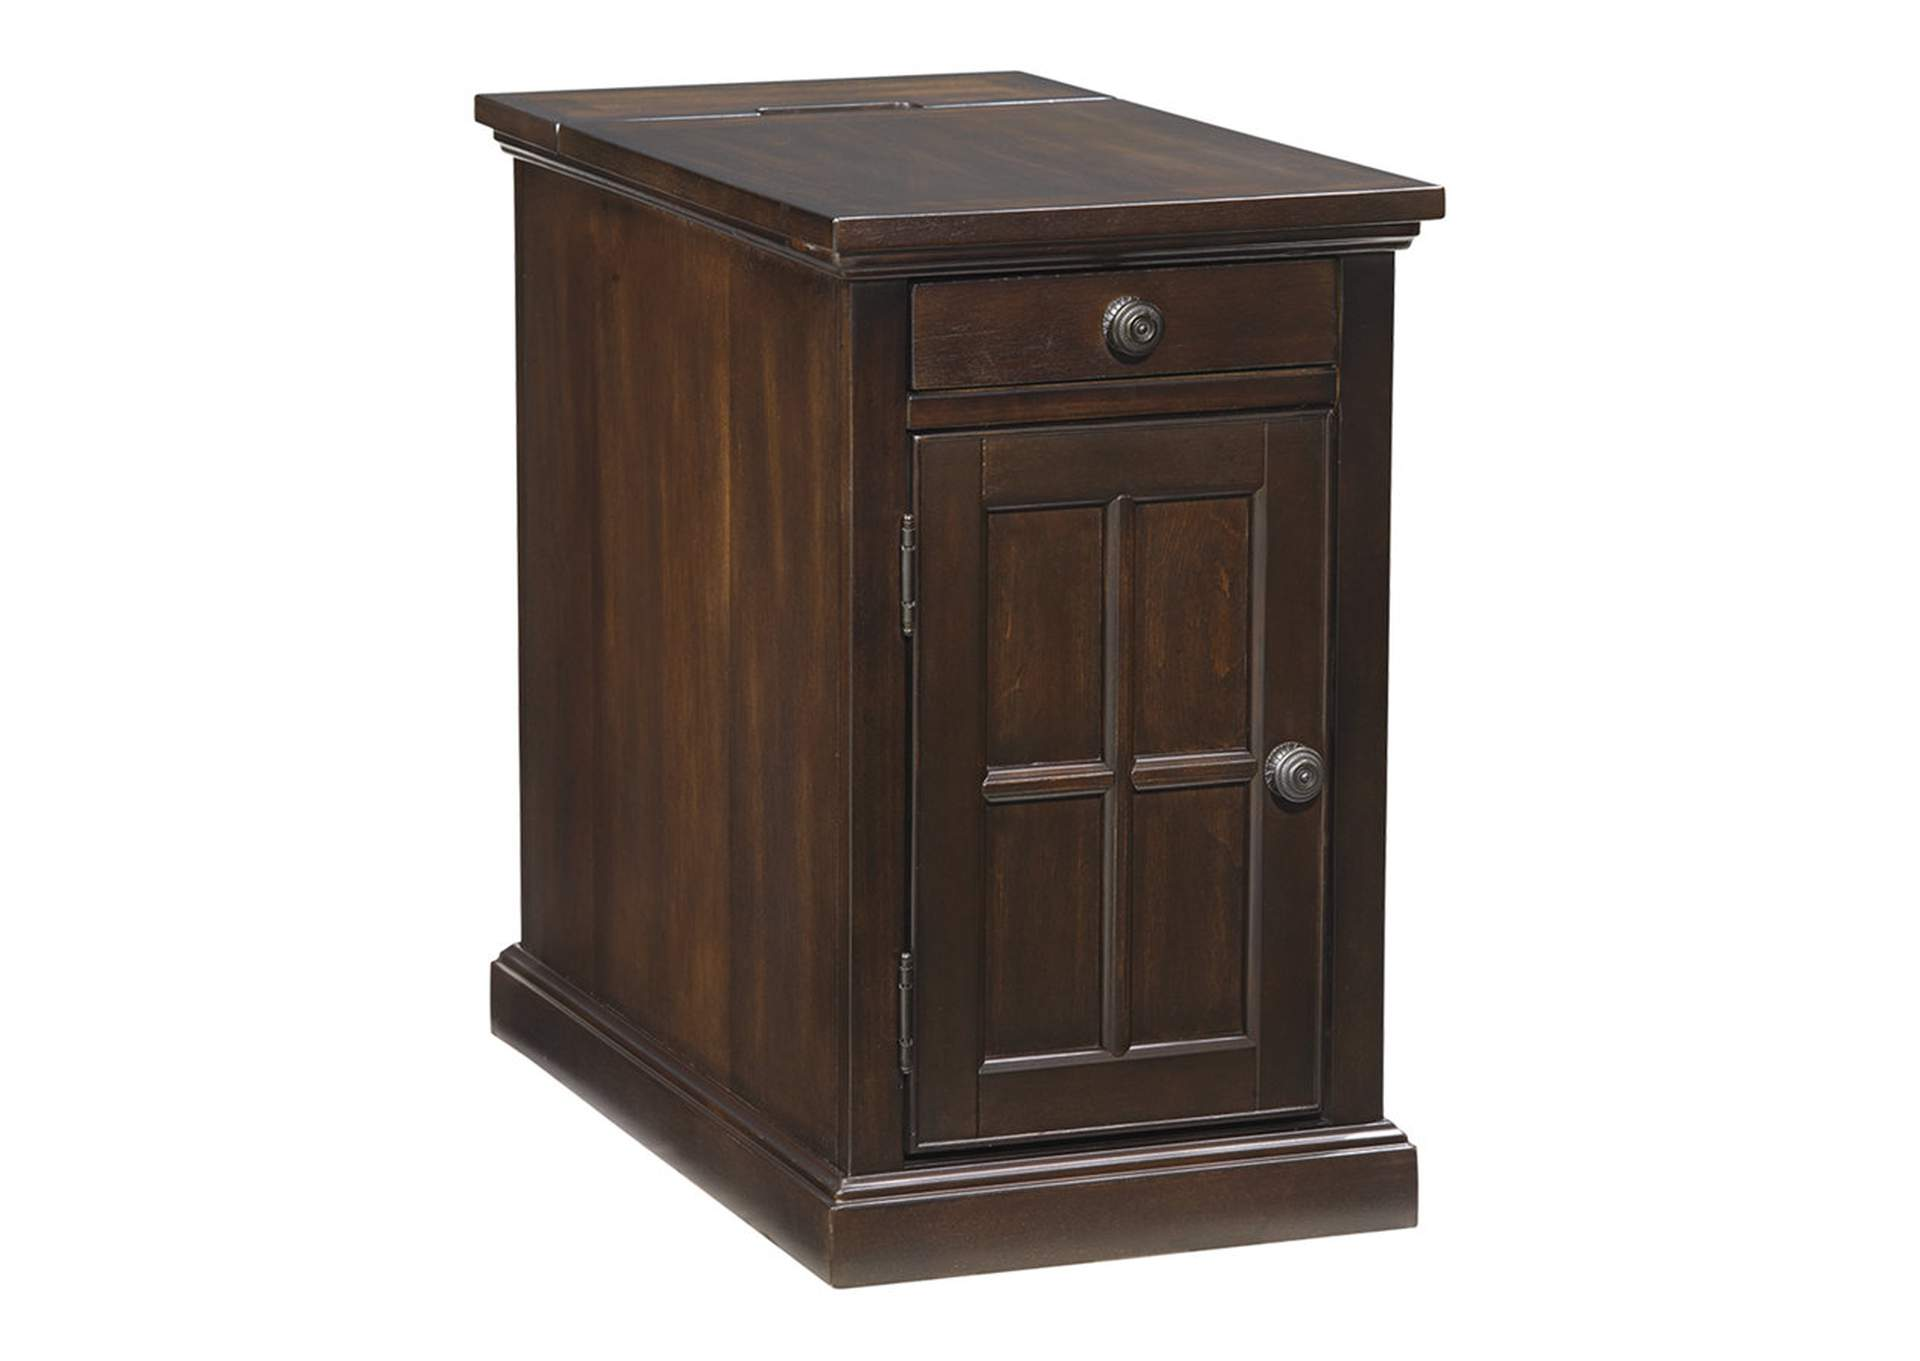 Laflorn Chairside End Table with USB Ports and Outlets